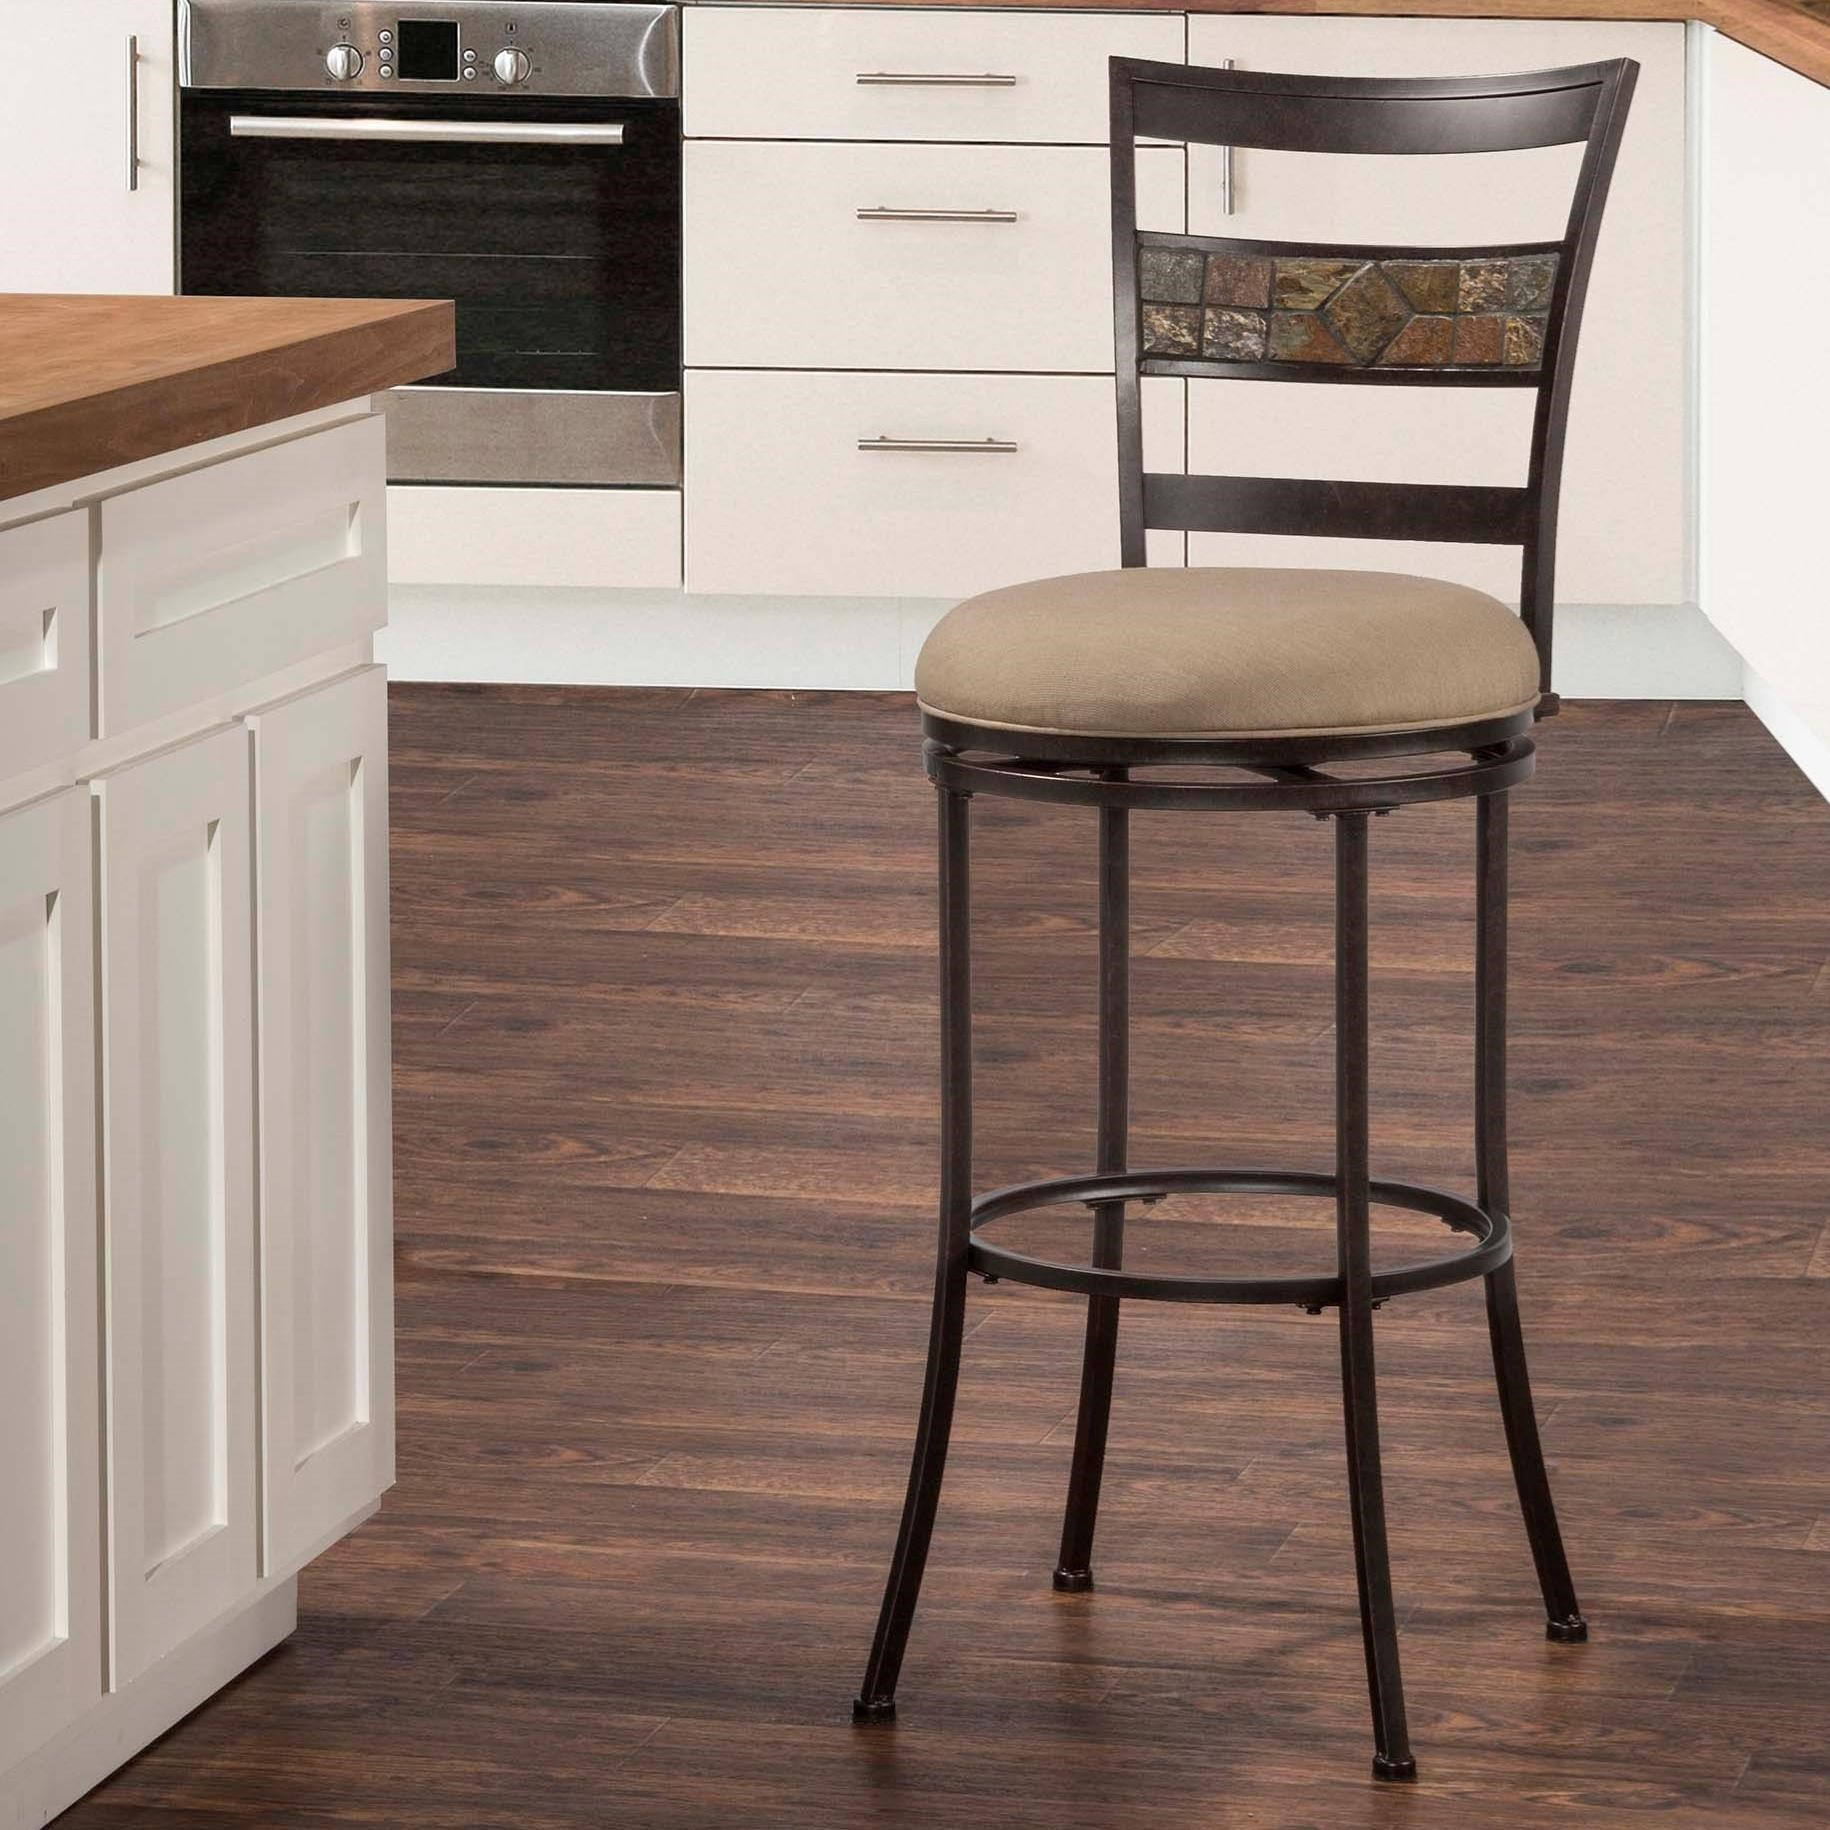 Hillsdale Indoor Outdoor Stools Swivel Bar Stool With